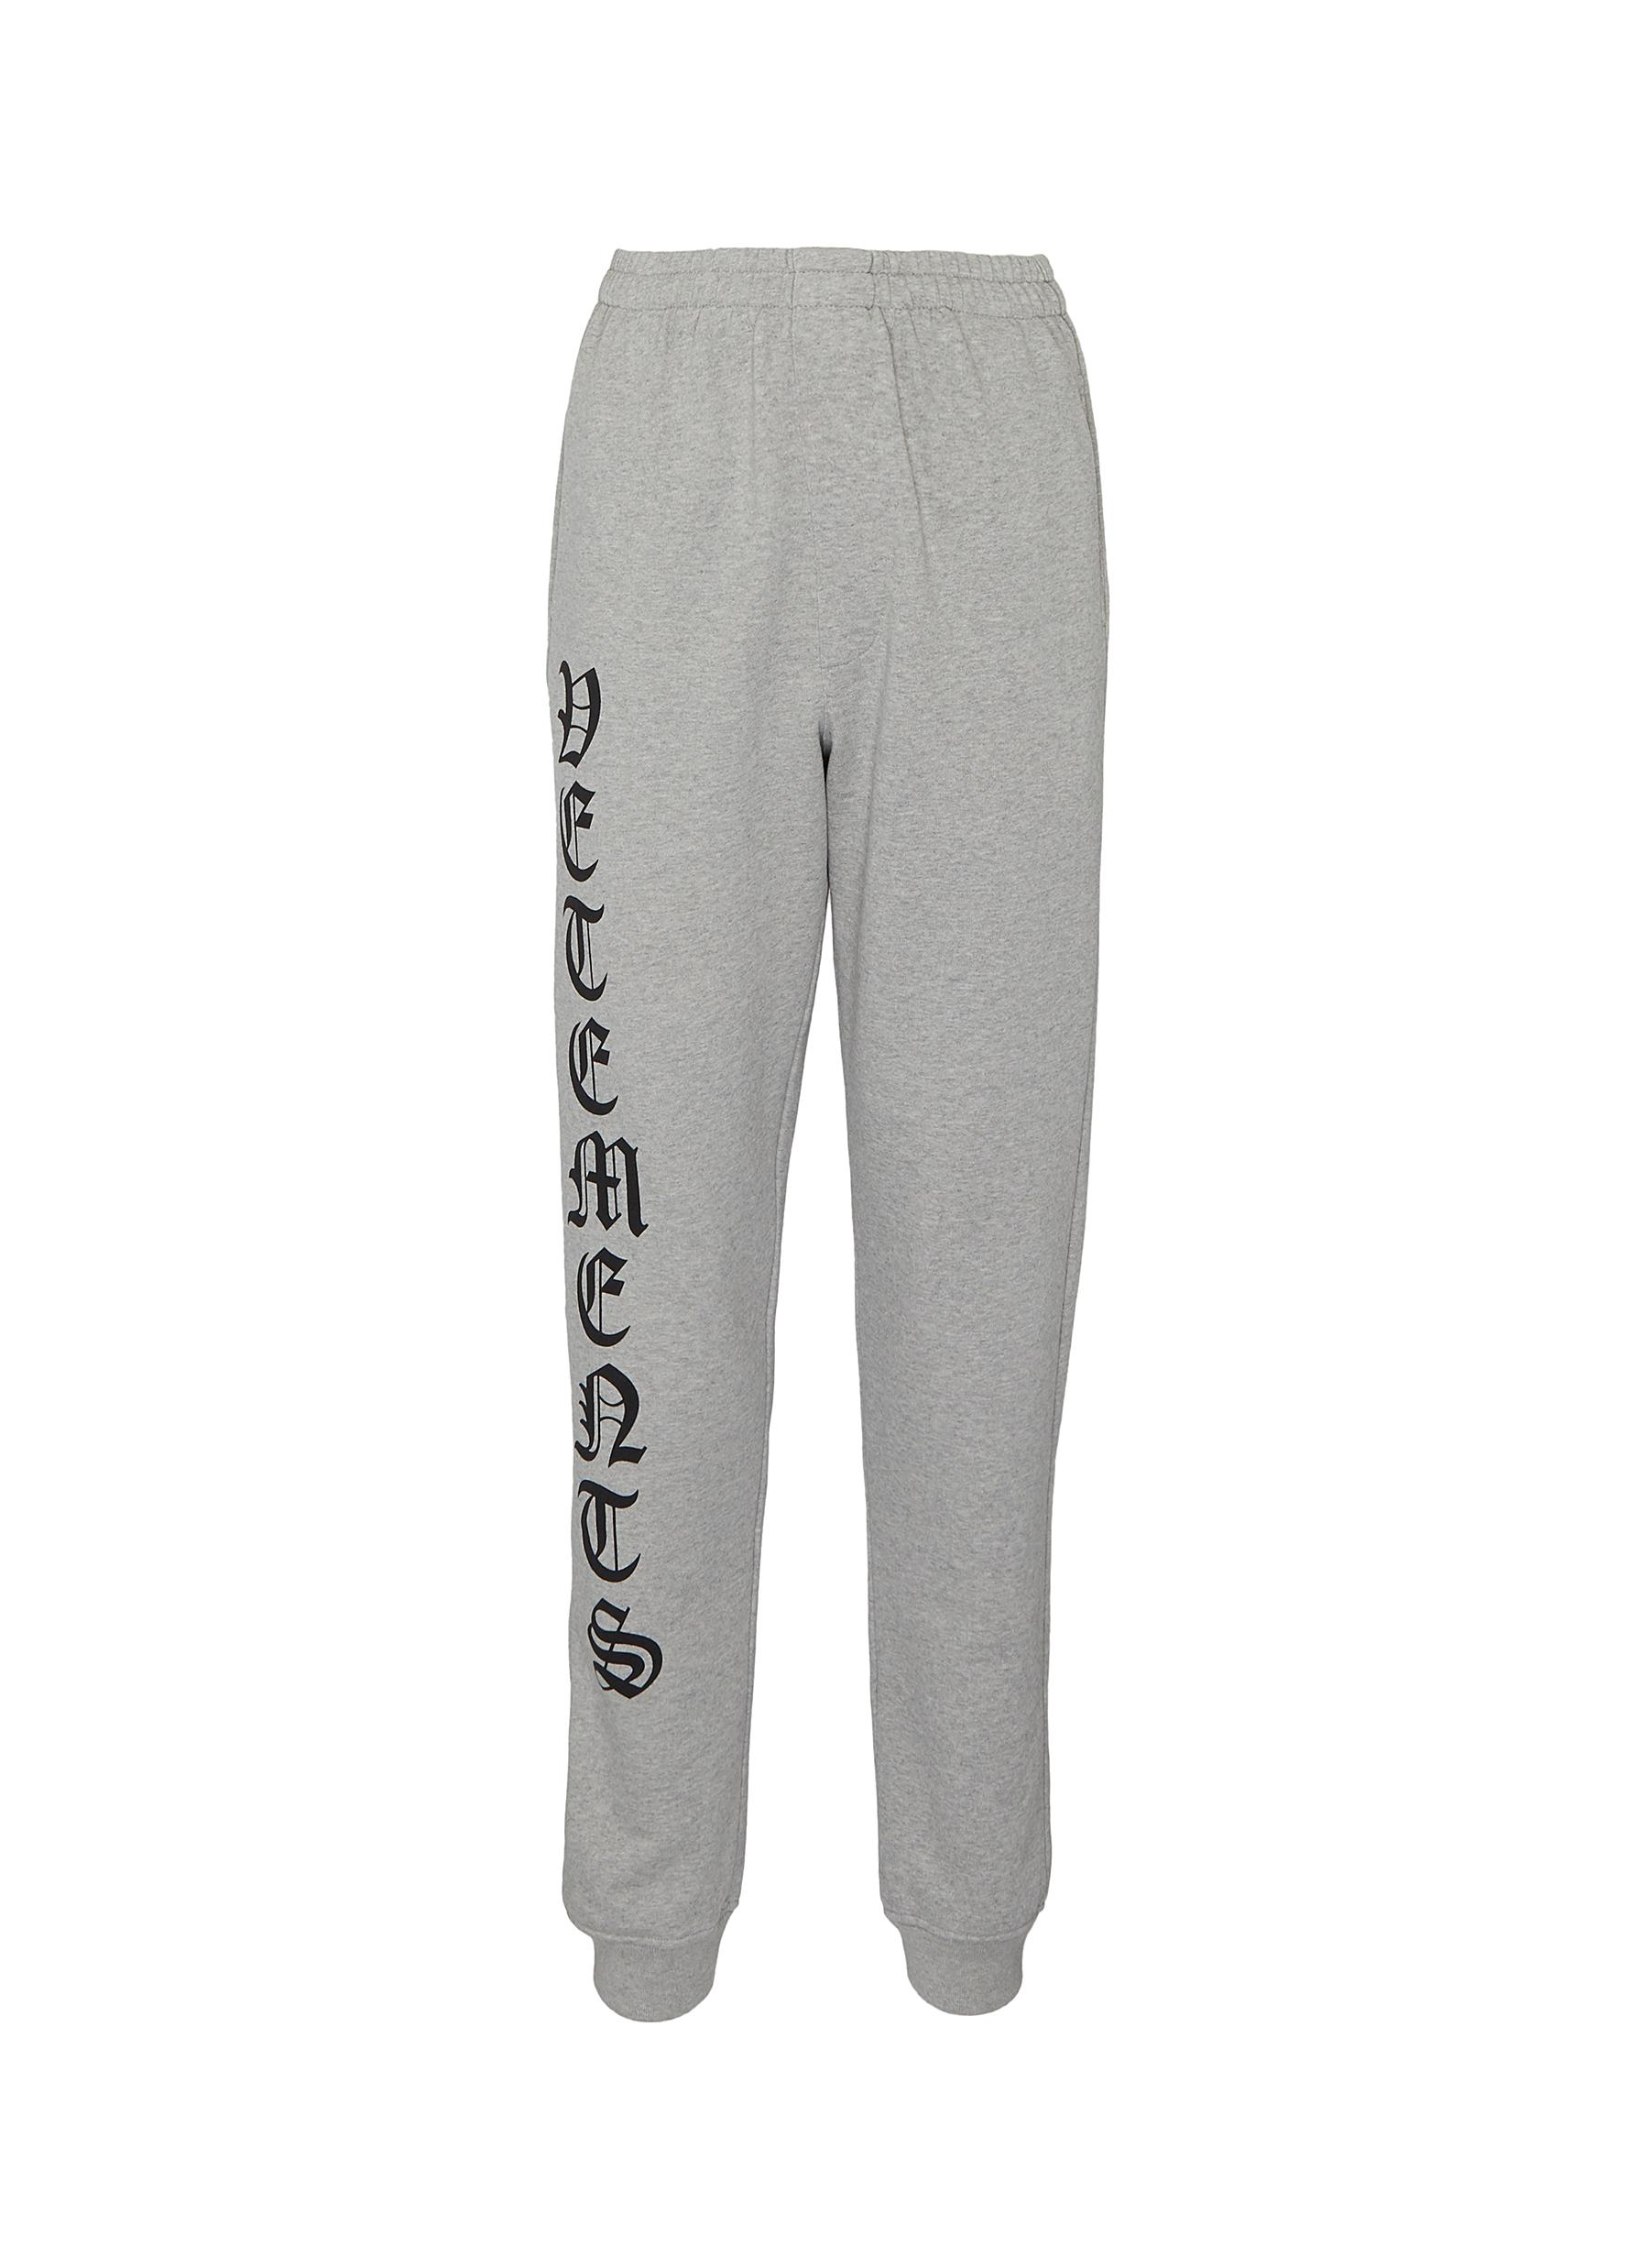 Buy Vetements Pants & Shorts 'Gothic' logo outseam sweatpants